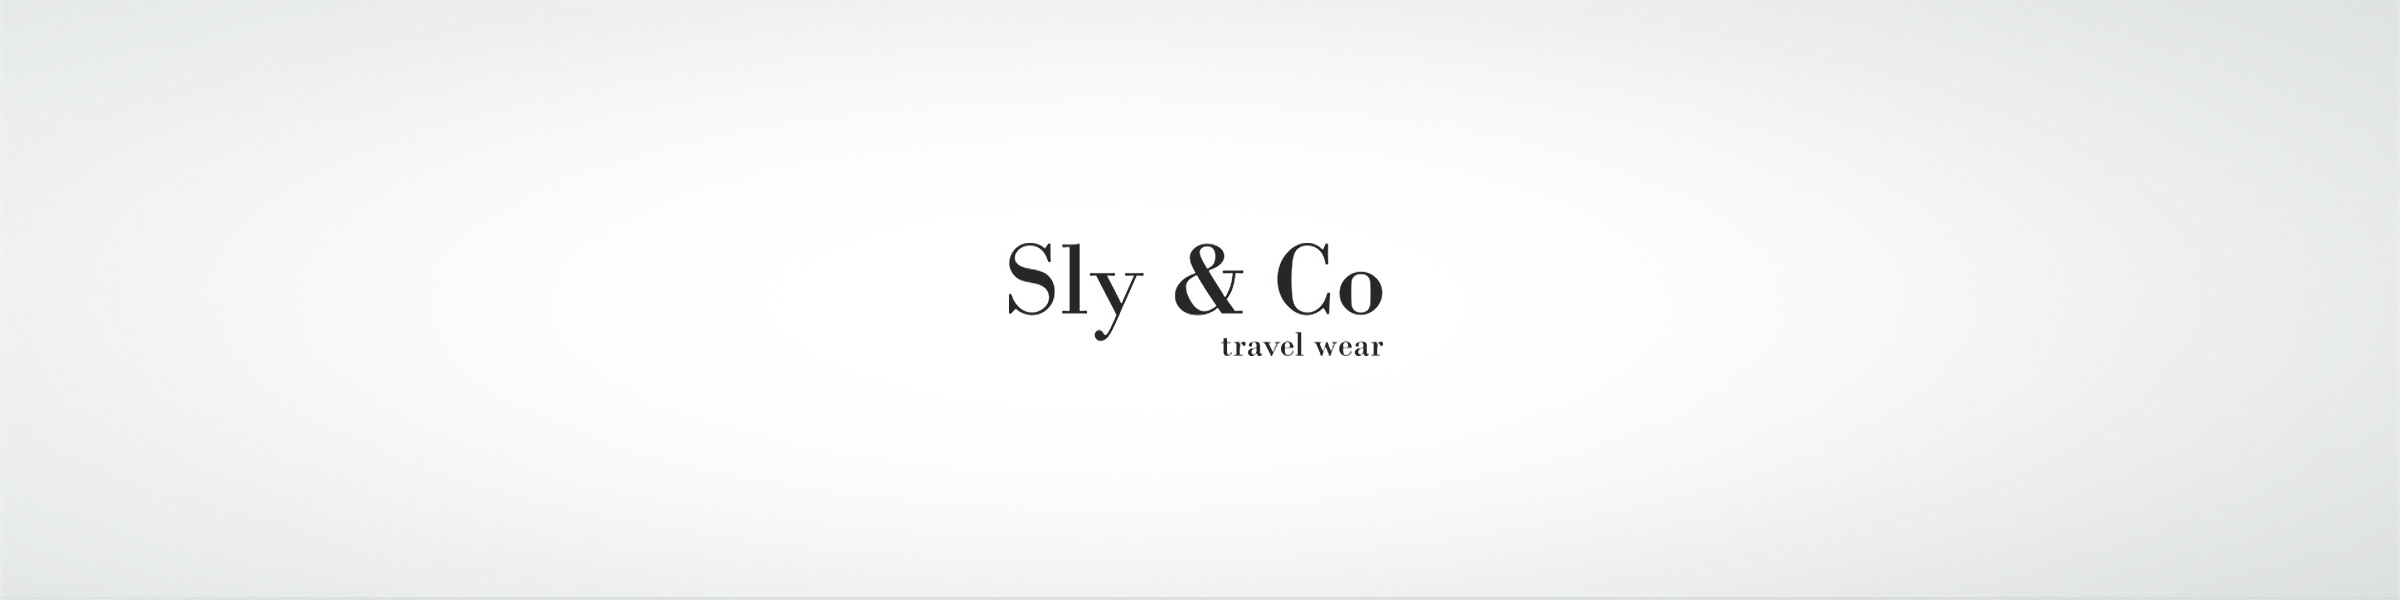 030876 SLY & CO